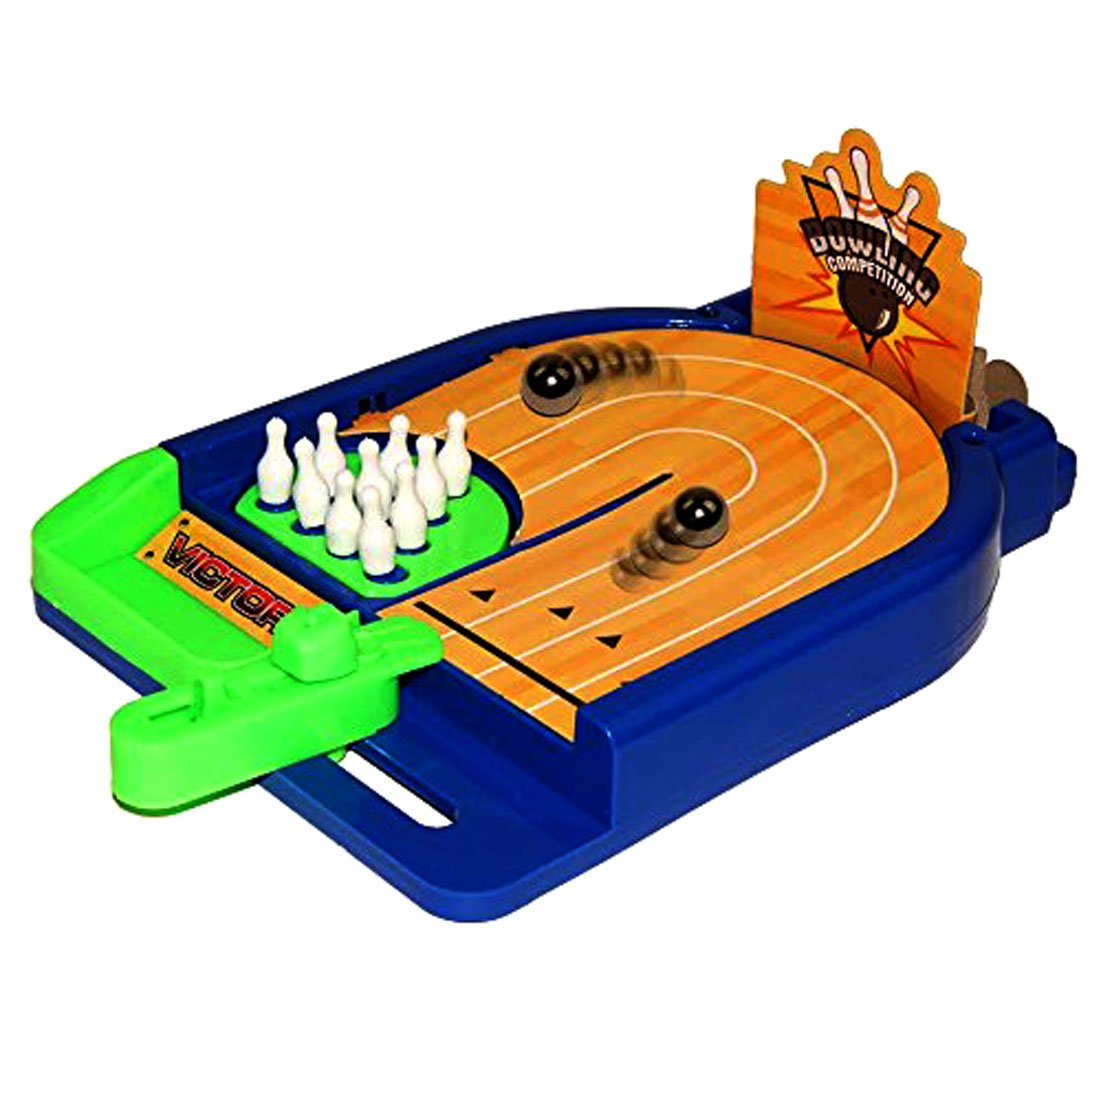 Birthday Party Toy Cubby Christmas Tabletop Bowling Arcade Board Game Power Strike Bowling Skills Game for Ages 5 and Up BBQ Surprise Game Room Miniature Desktop Bowling Board Game